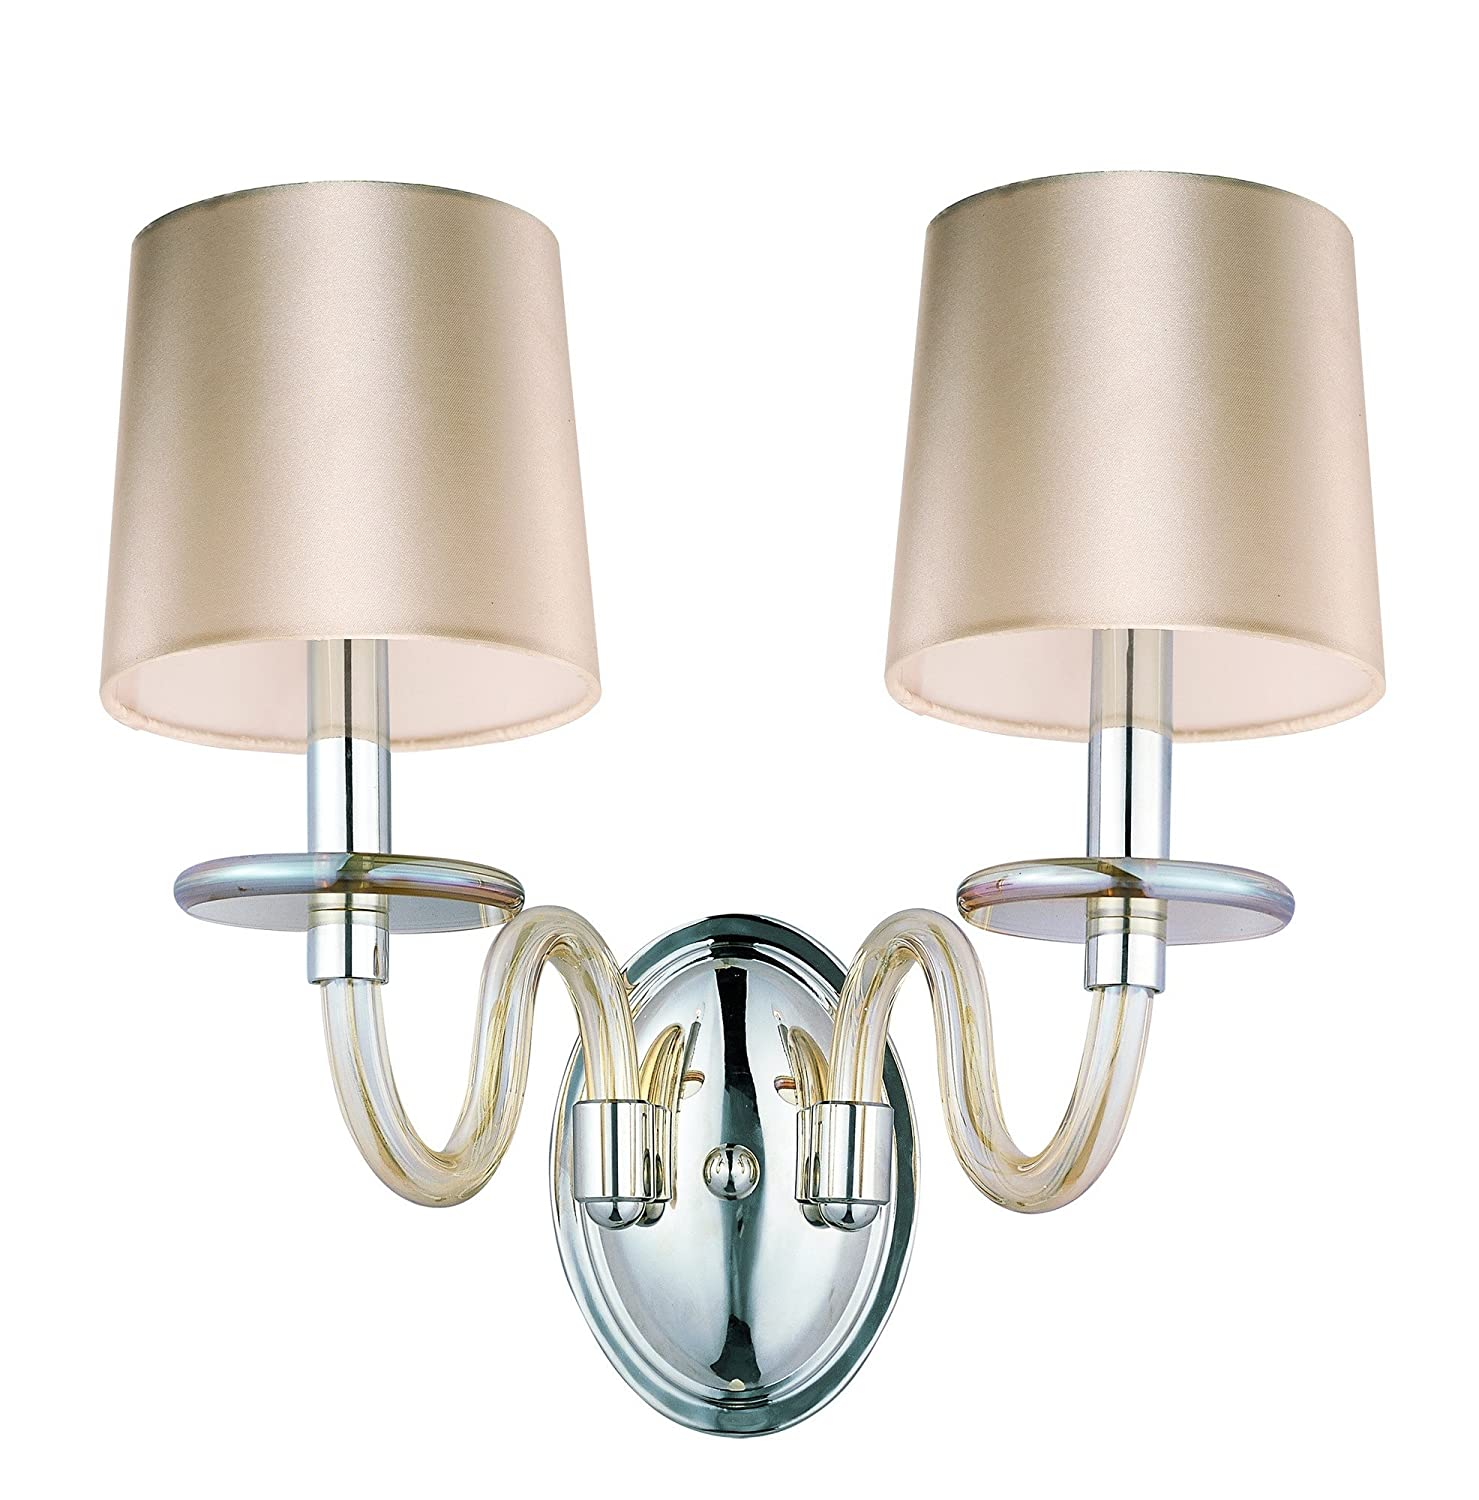 Amazon.com: maxim Lighting 27542 cgpn venezia-wall lámpara ...